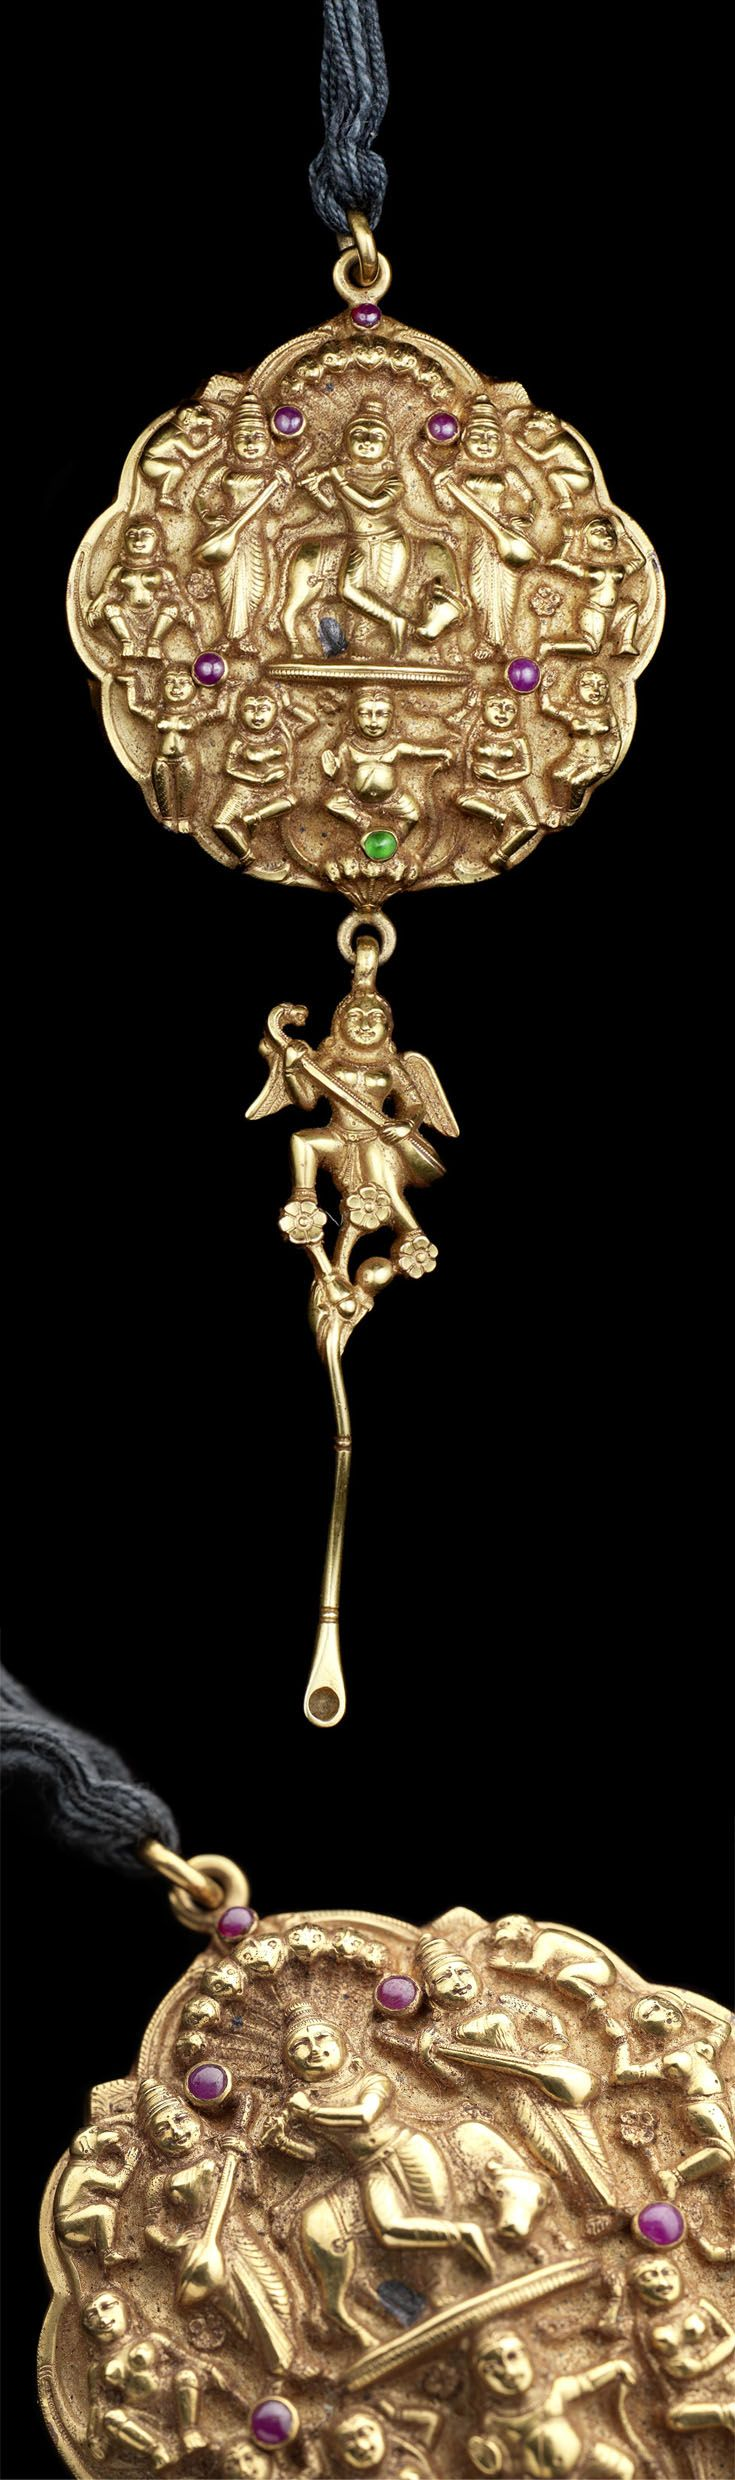 South India   Gold pendant set with emerald and ruby; depicting Krishna playing the flute, with an ear-spoon suspension and peri-peri below   19th century   Est. 5'000 - 7'000£ ~ Occt '13